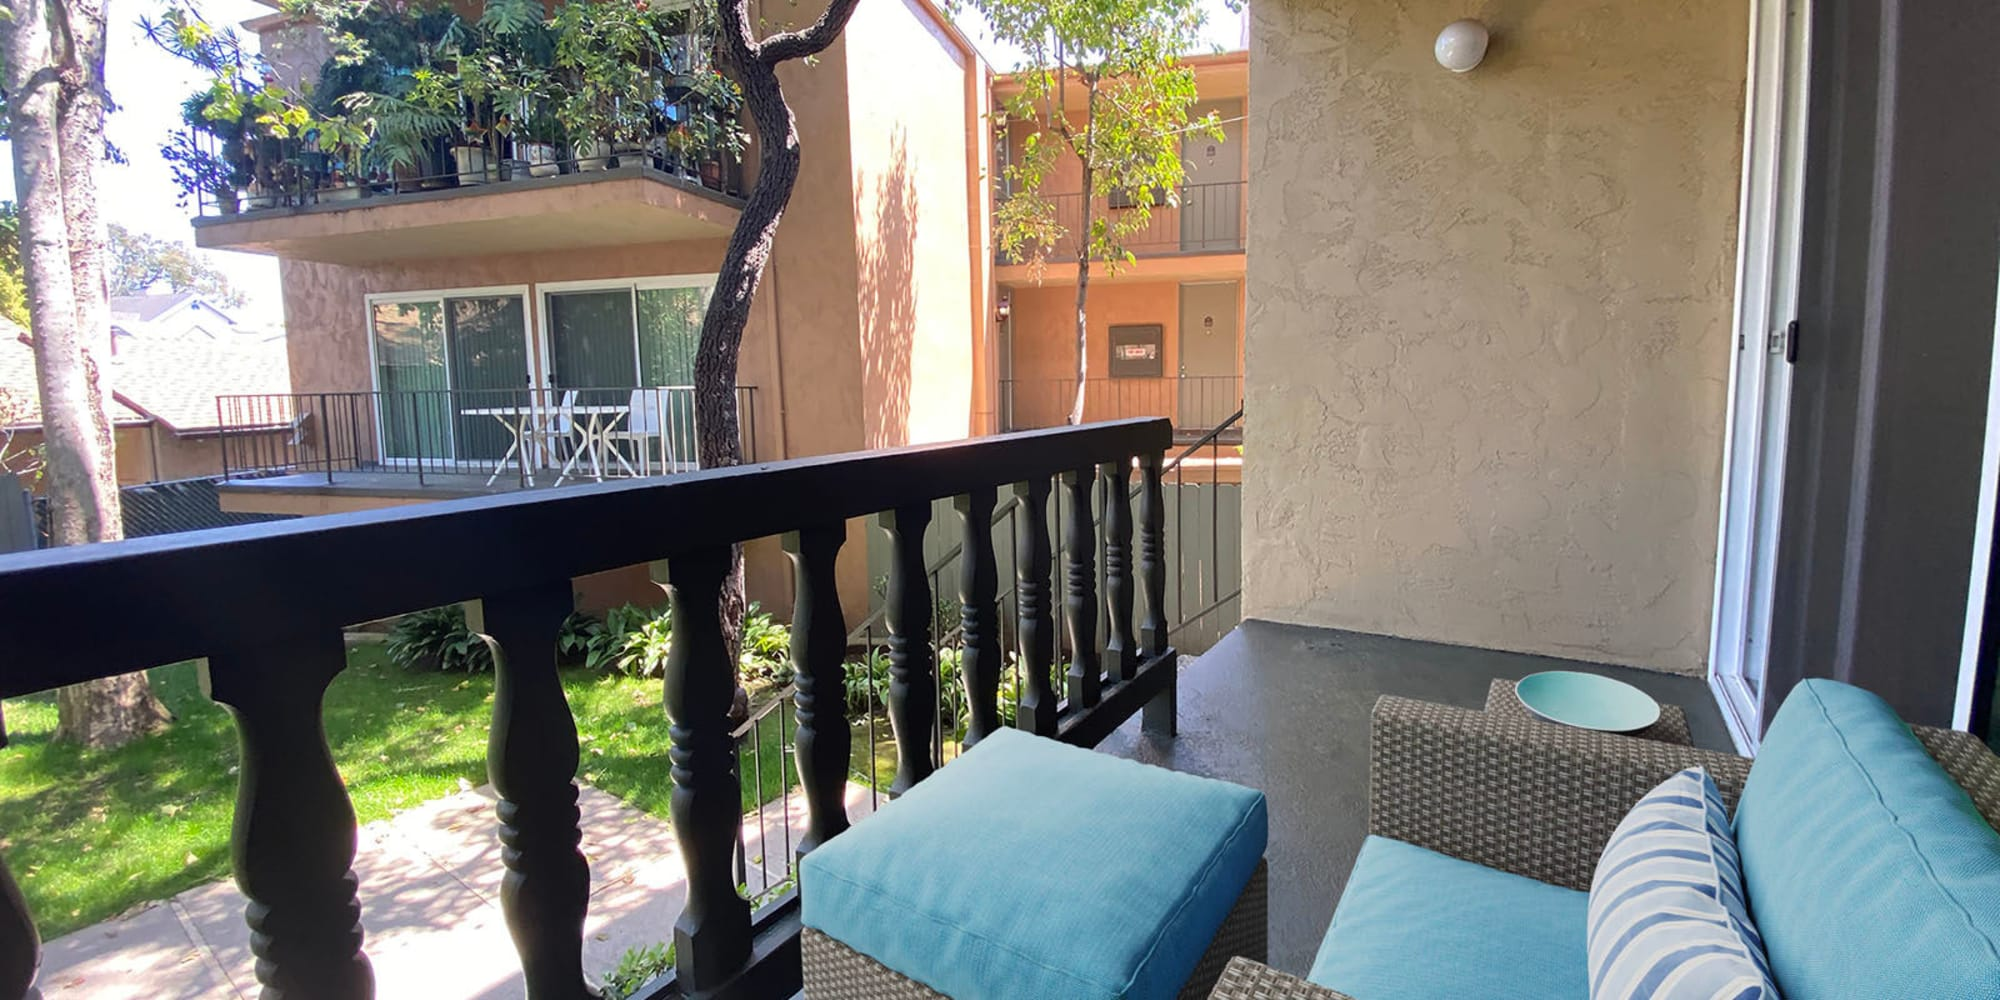 Private balcony with a terrific view of the garden-style community at Casa Granada in Los Angeles, California